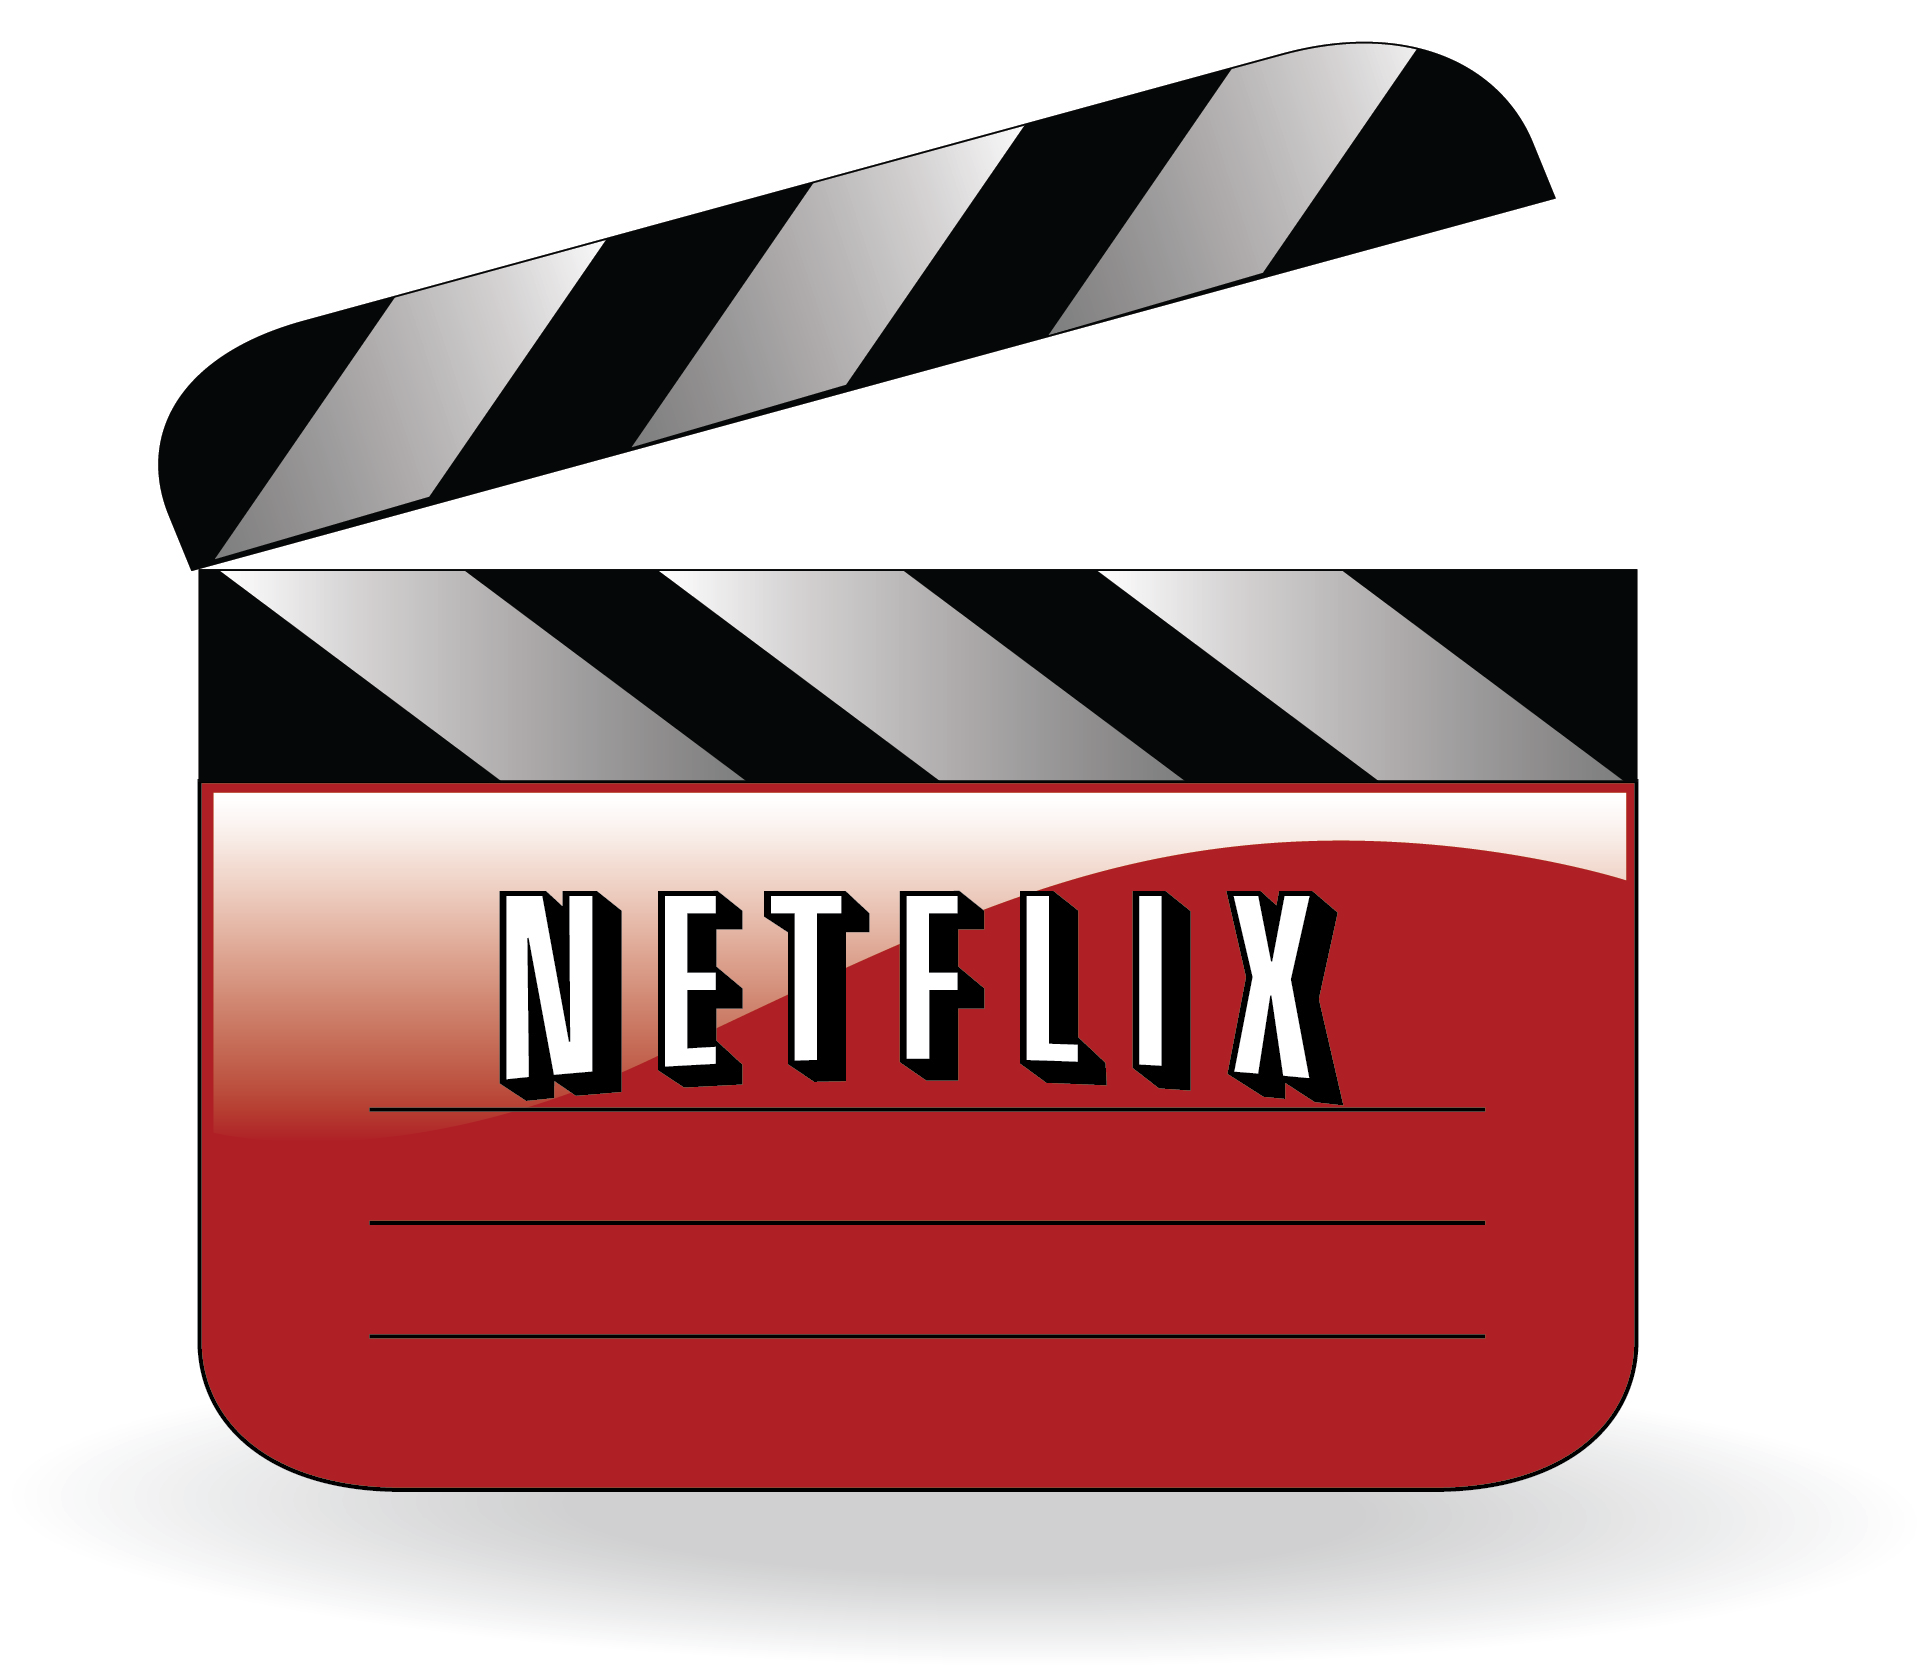 Netflix Clipart Transparent.